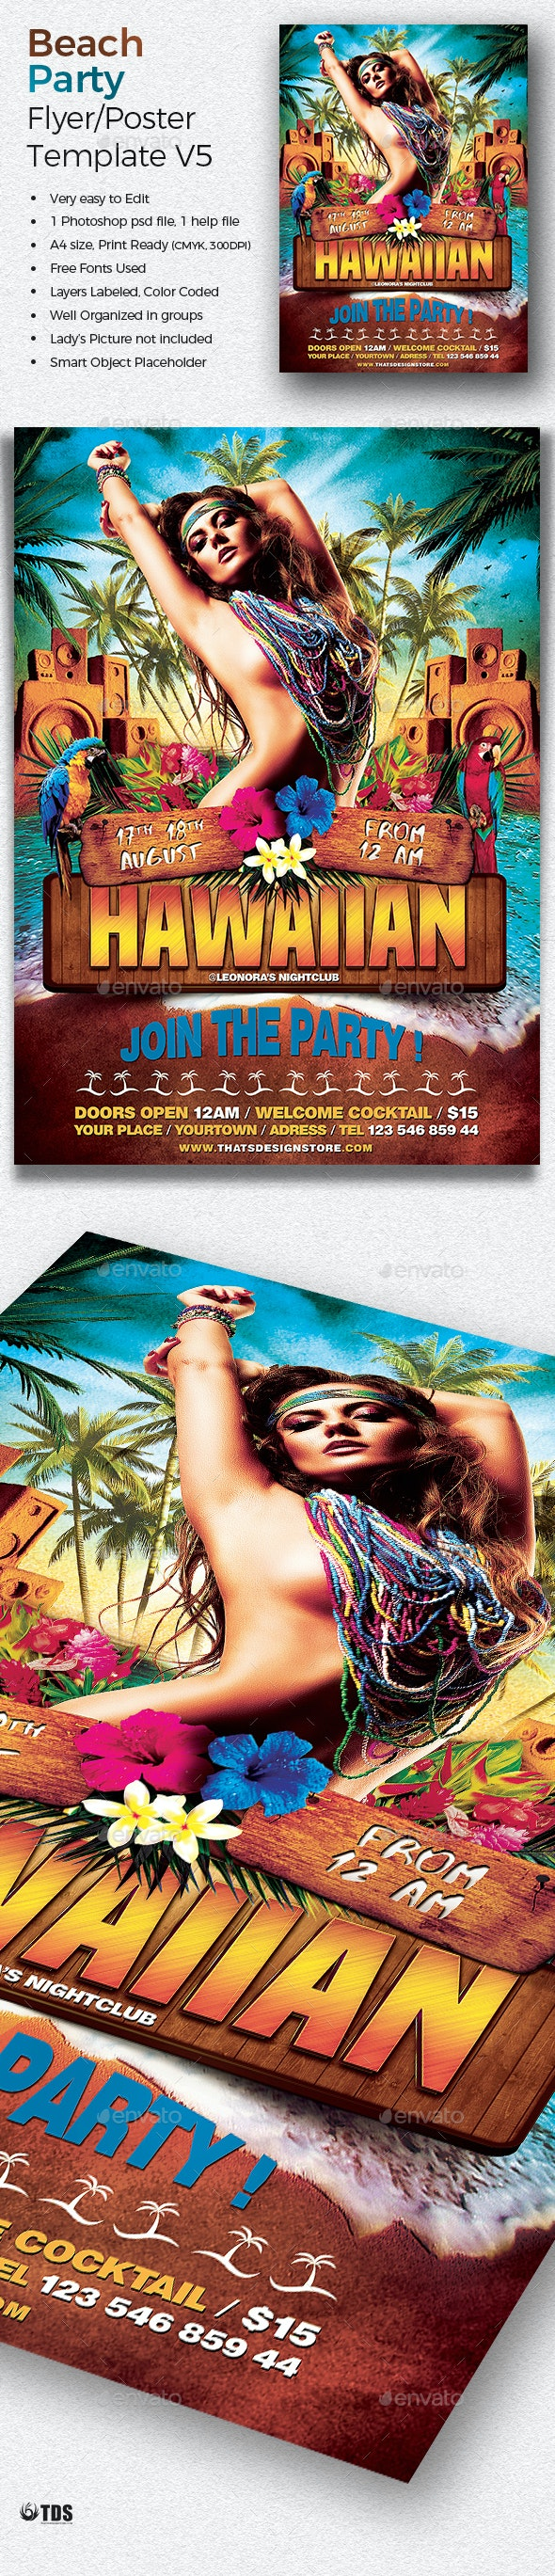 Beach Party Flyer Template V5 - Clubs & Parties Events